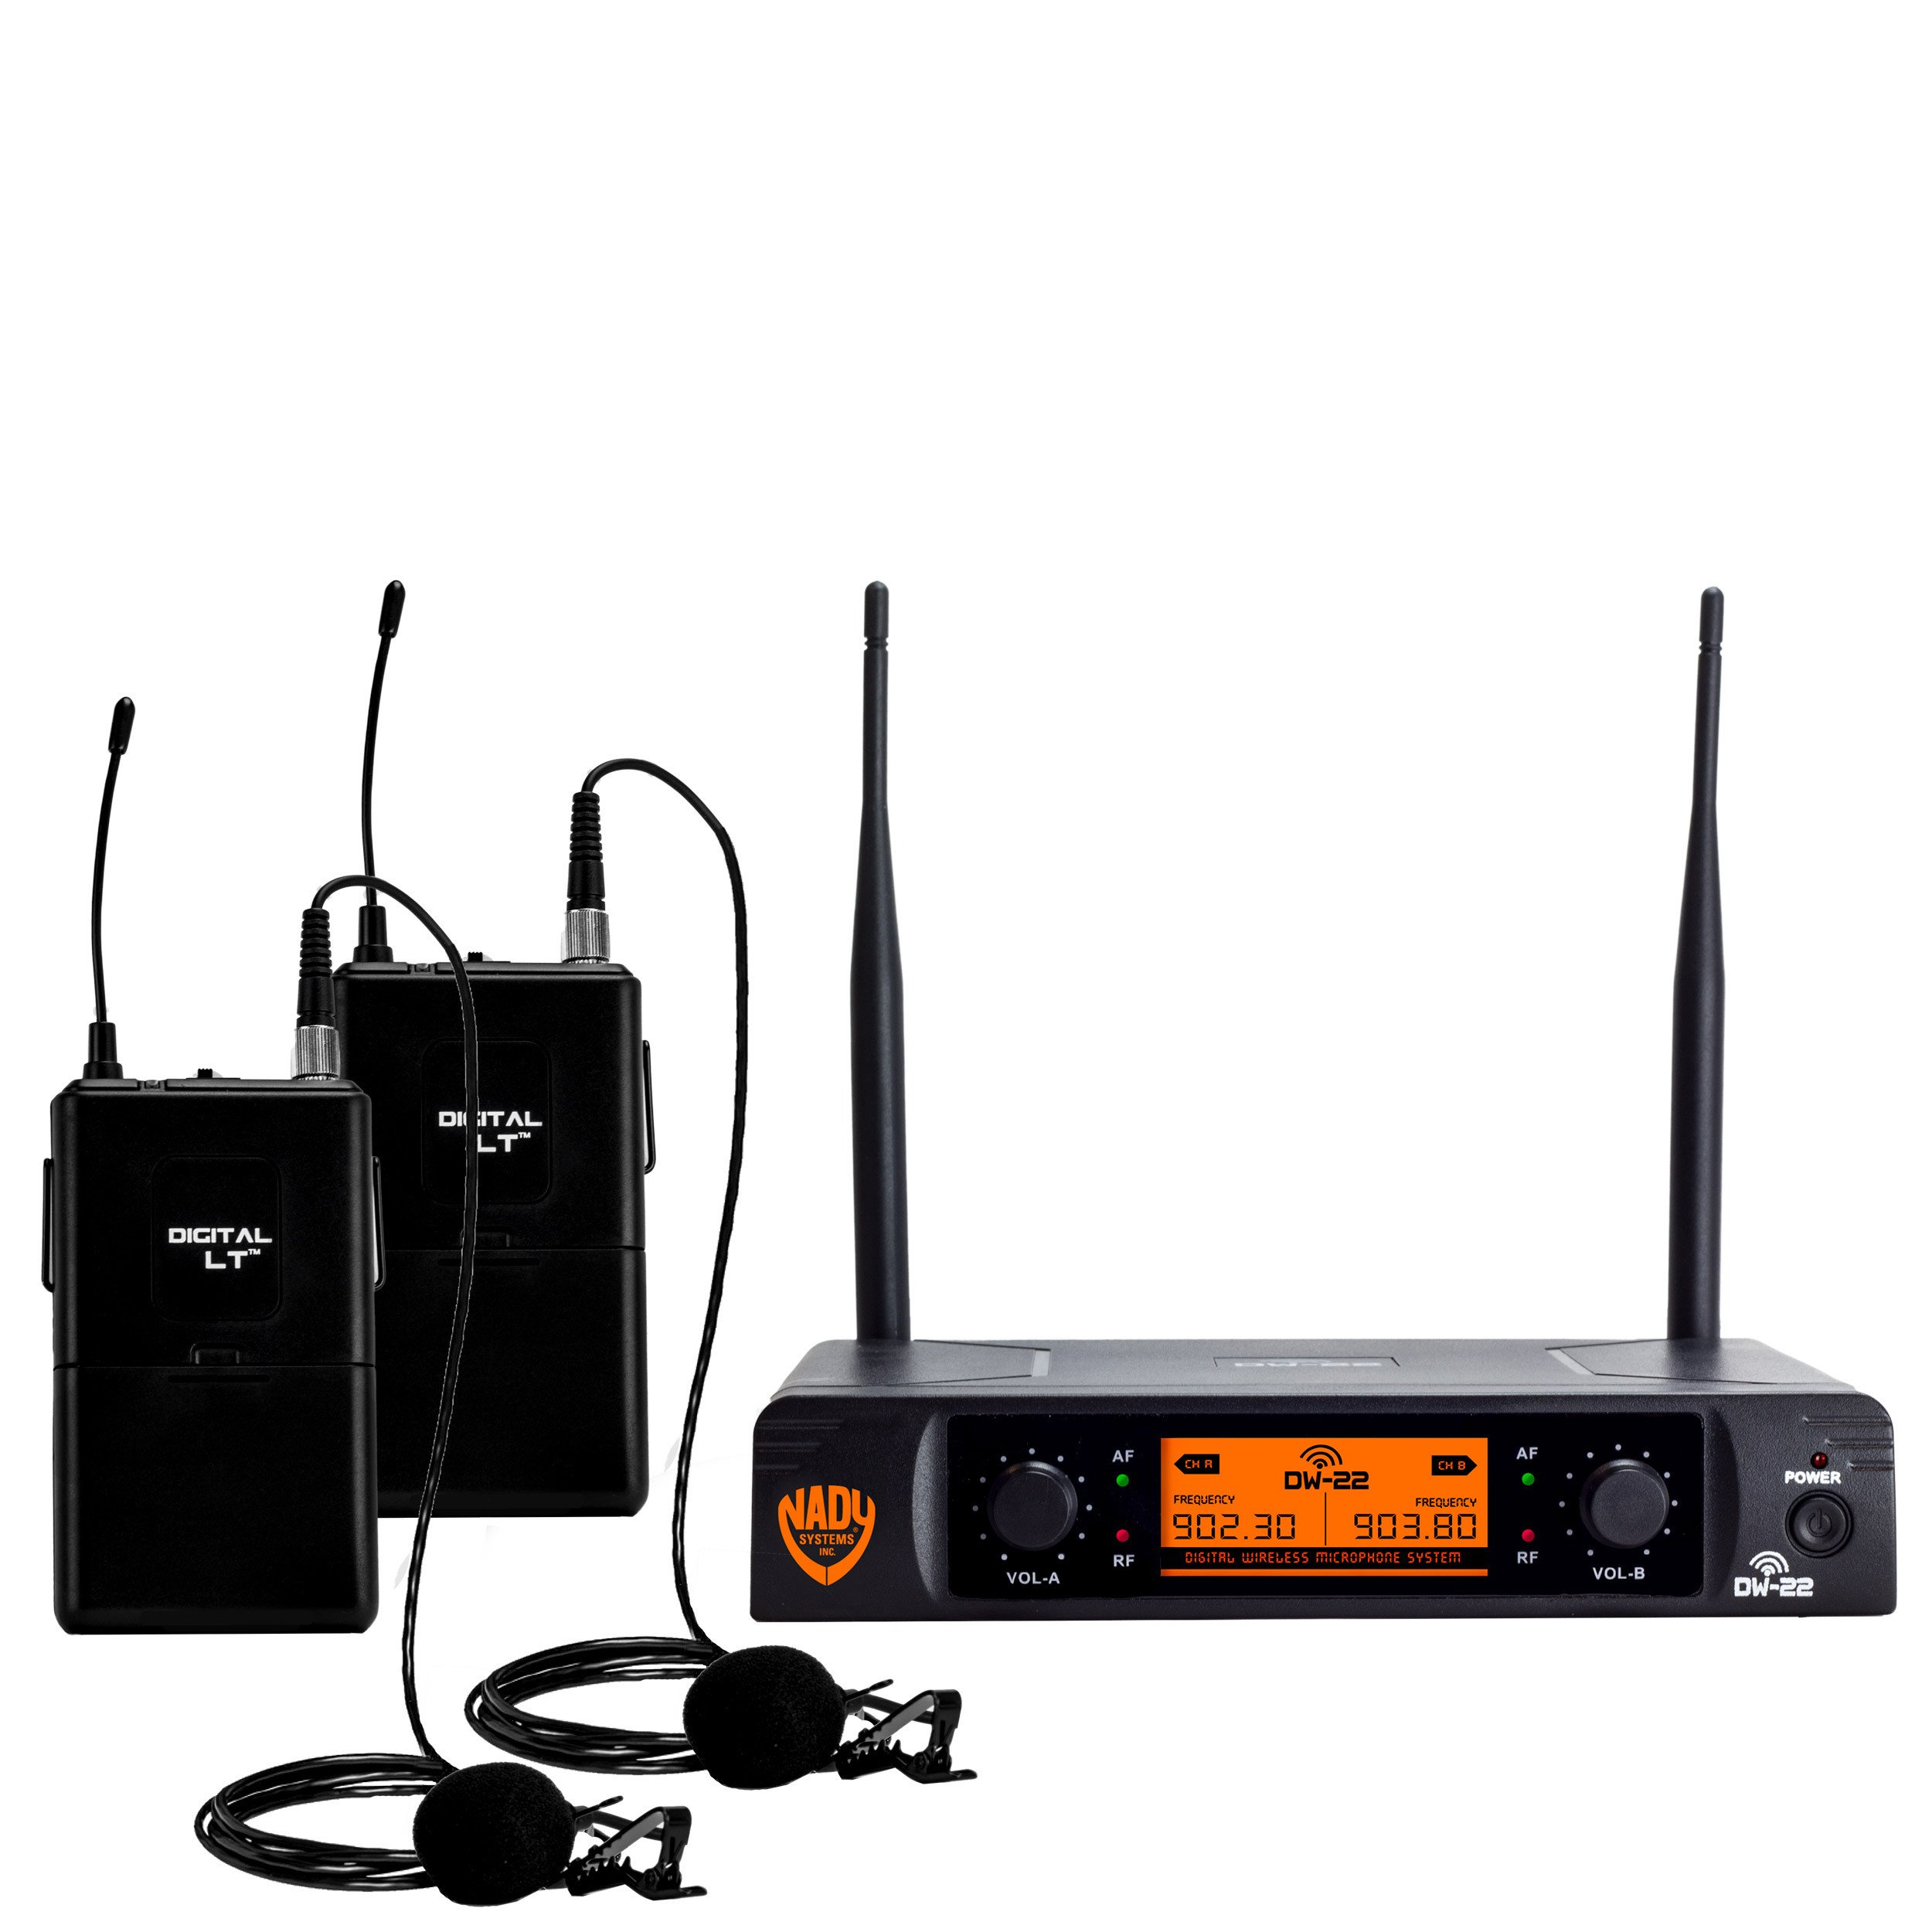 Nady DW-22 Dual Digital Wireless Lapel Microphone System